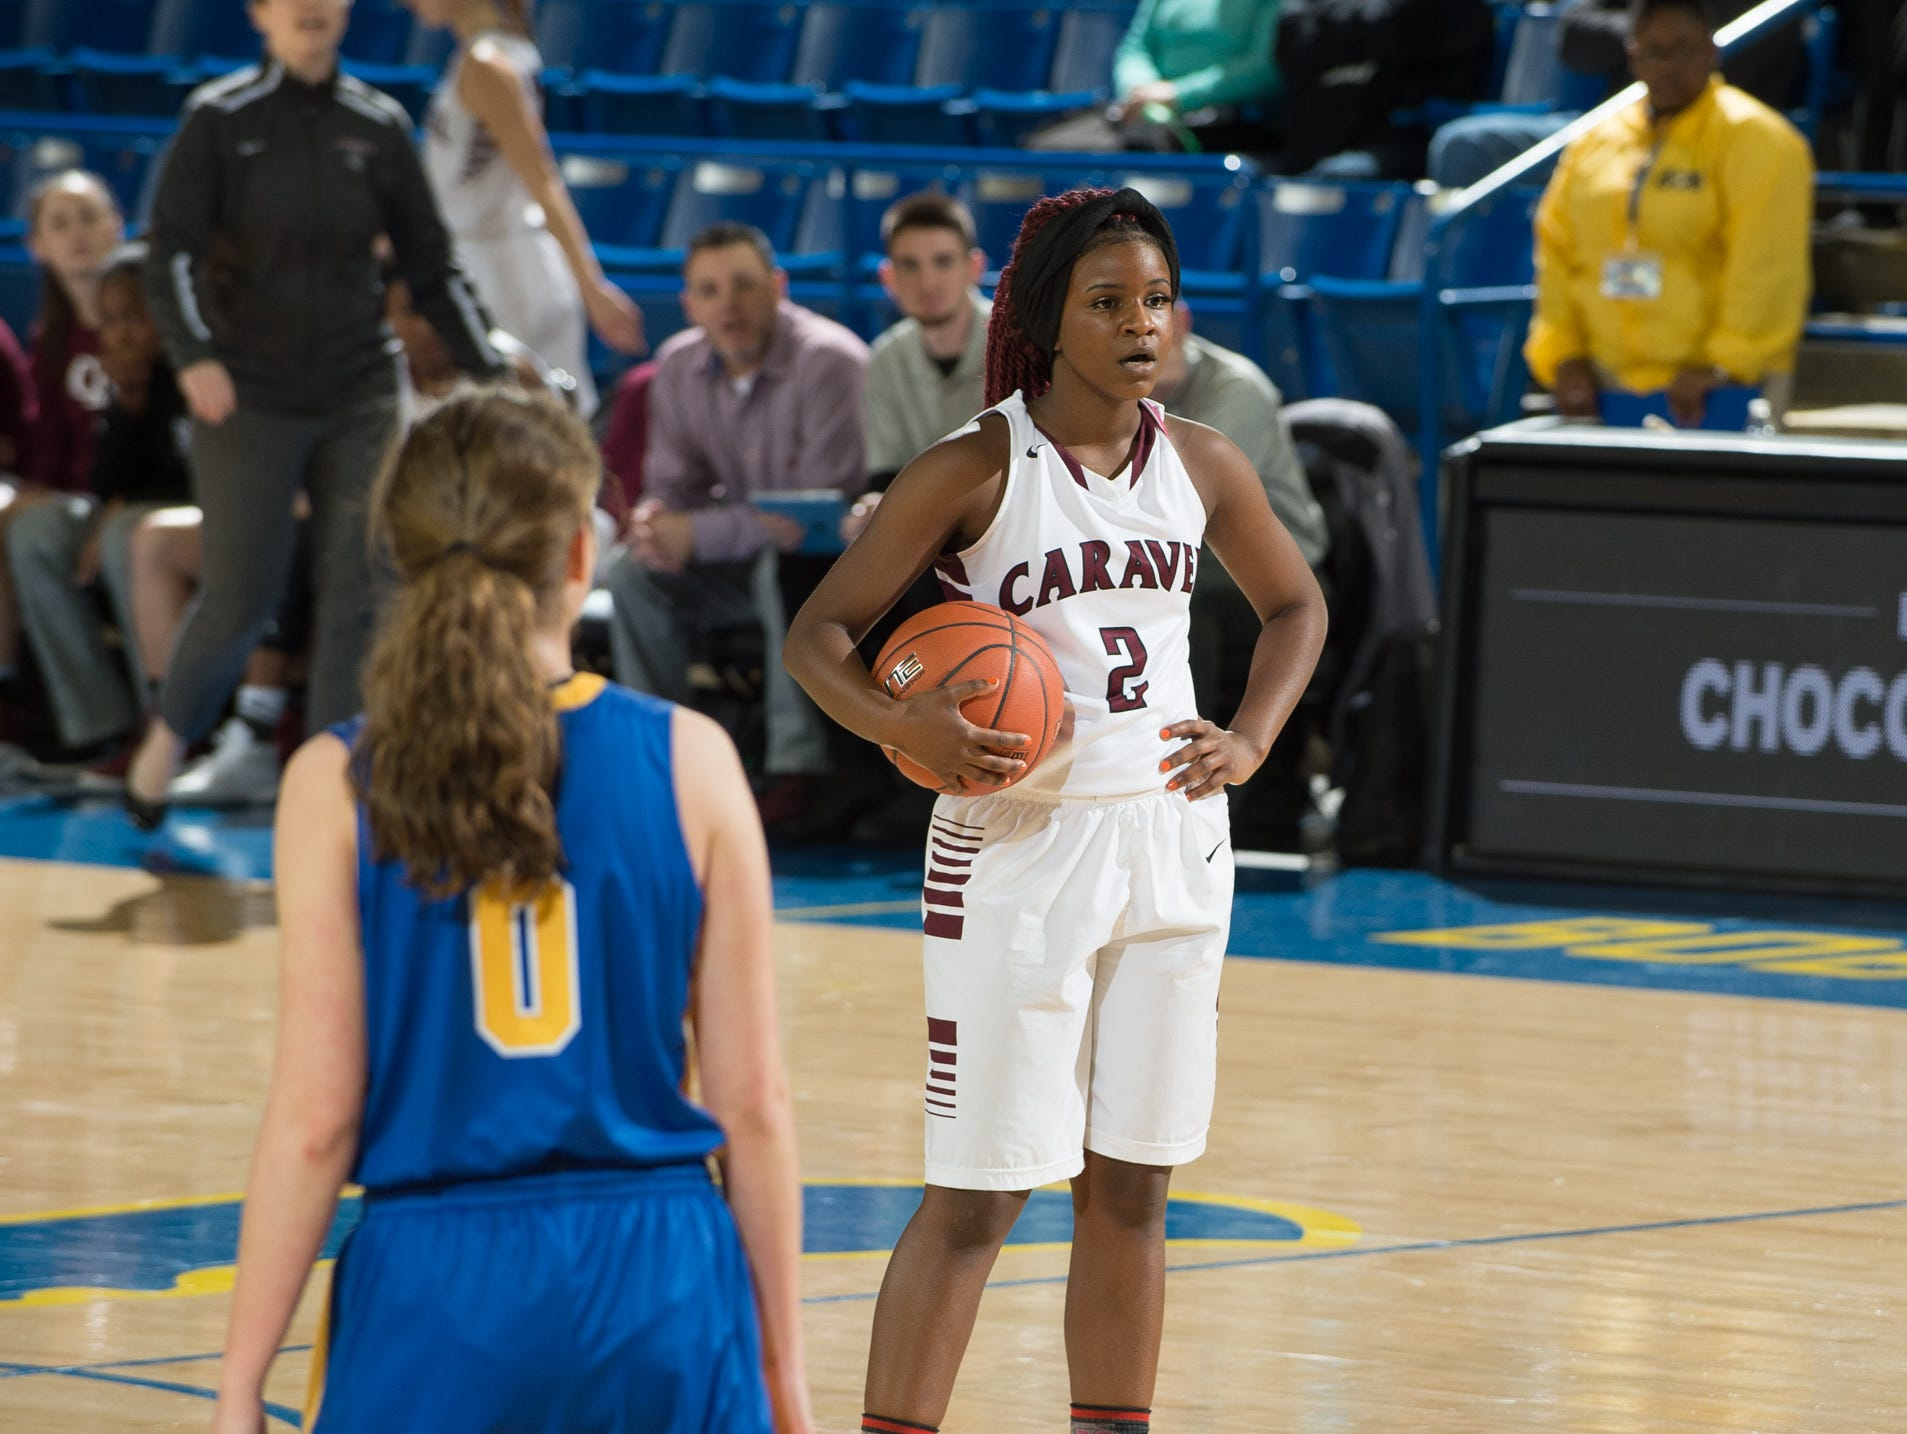 Caravel's Maia Bryson (2) holds on to the ball running the clock in the quarterfinals of DIAA Girls Basketball Tournament at the University of Delaware against A.I. duPont.